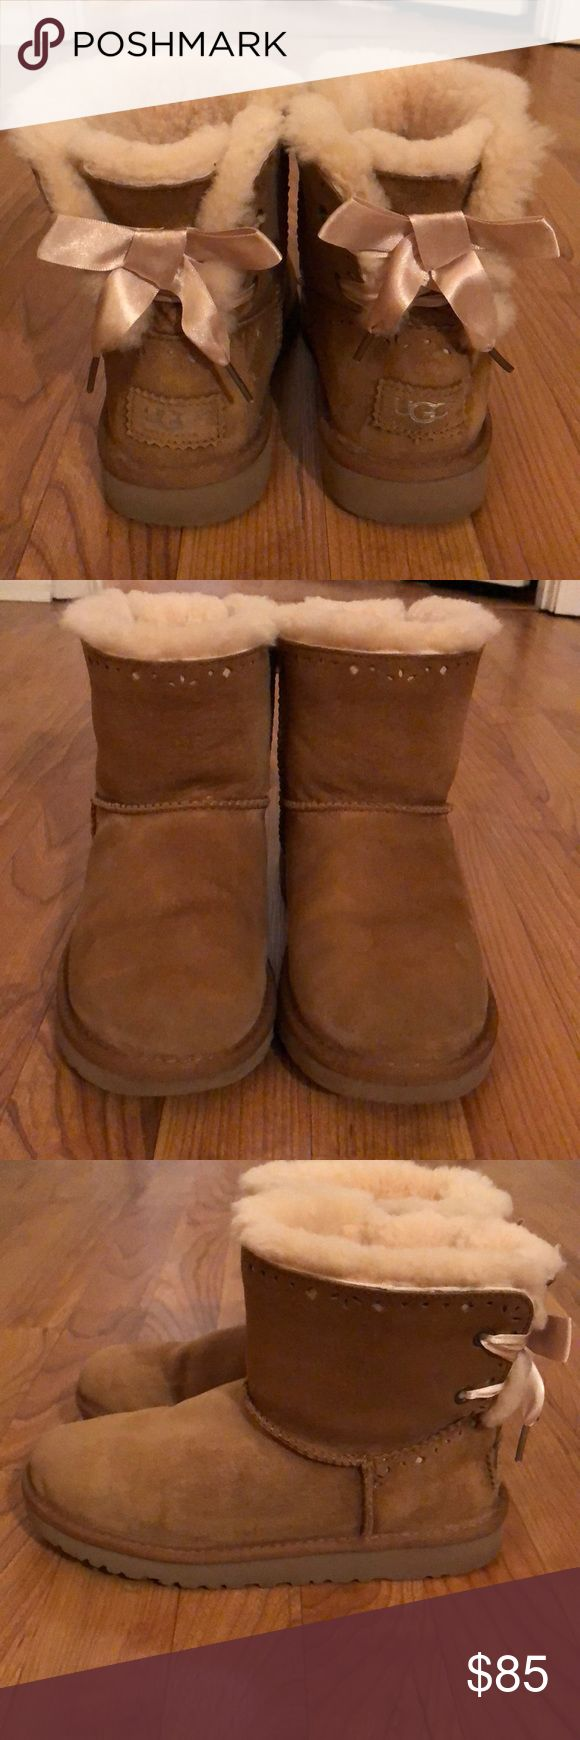 UGG MINI BAILEY BOWS UGG MINI BAILEY BOW COLOR: CHESTNUT SIZE 5 (will fit up to size 7) SATIN BOWS  CUT OUT DESIGN ***some light water staining, can not tell when worn,easily cleaned with ugg cleaner*** GREAT CONDITION UGG Shoes Winter & Rain Boots